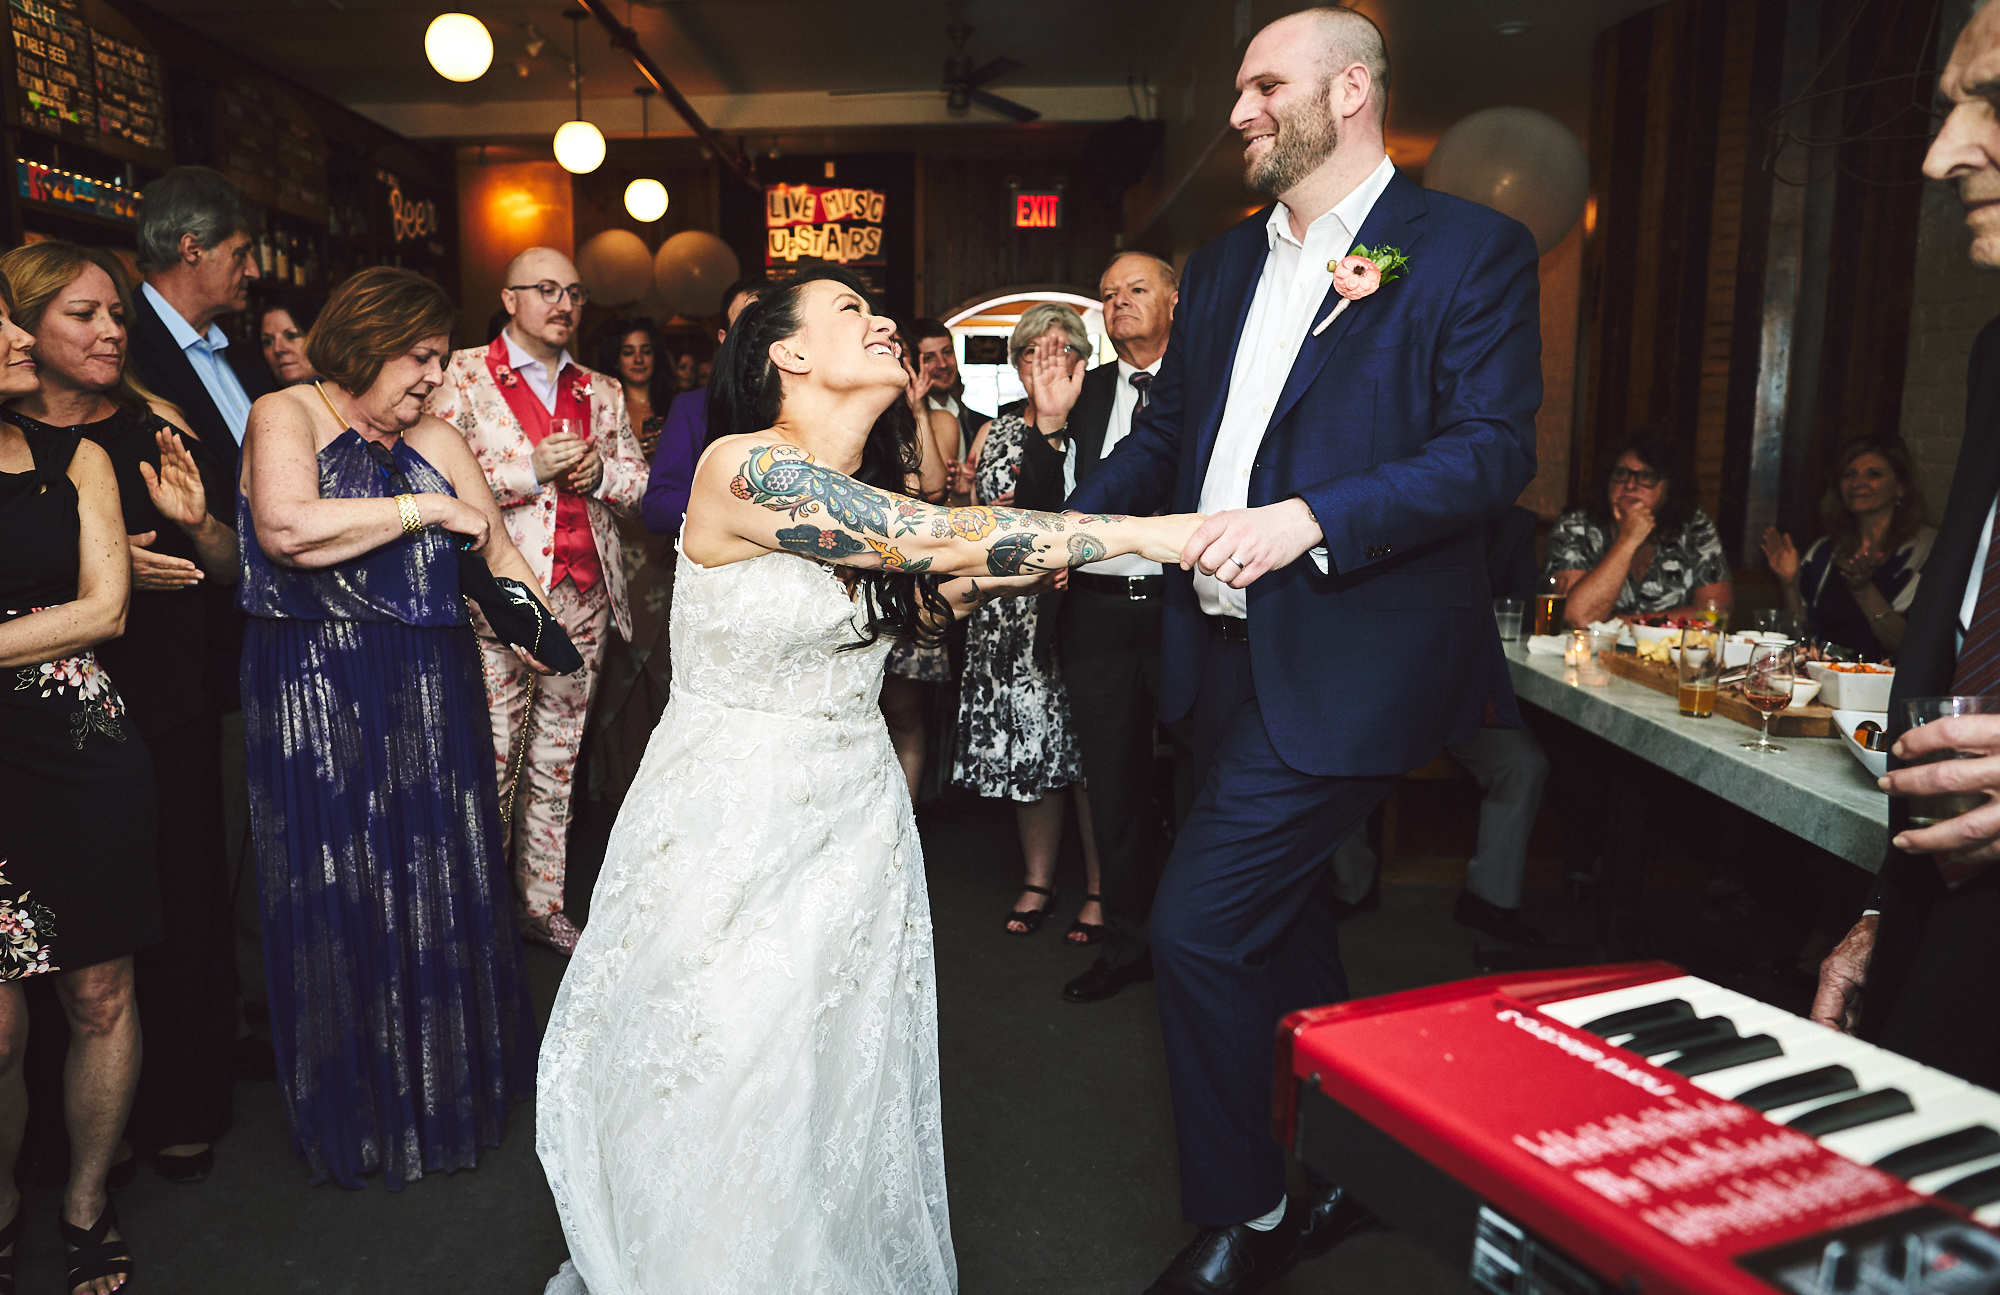 190518_SpringThreesBreweryWedding_By_BriJohnsonWeddings_0113.jpg